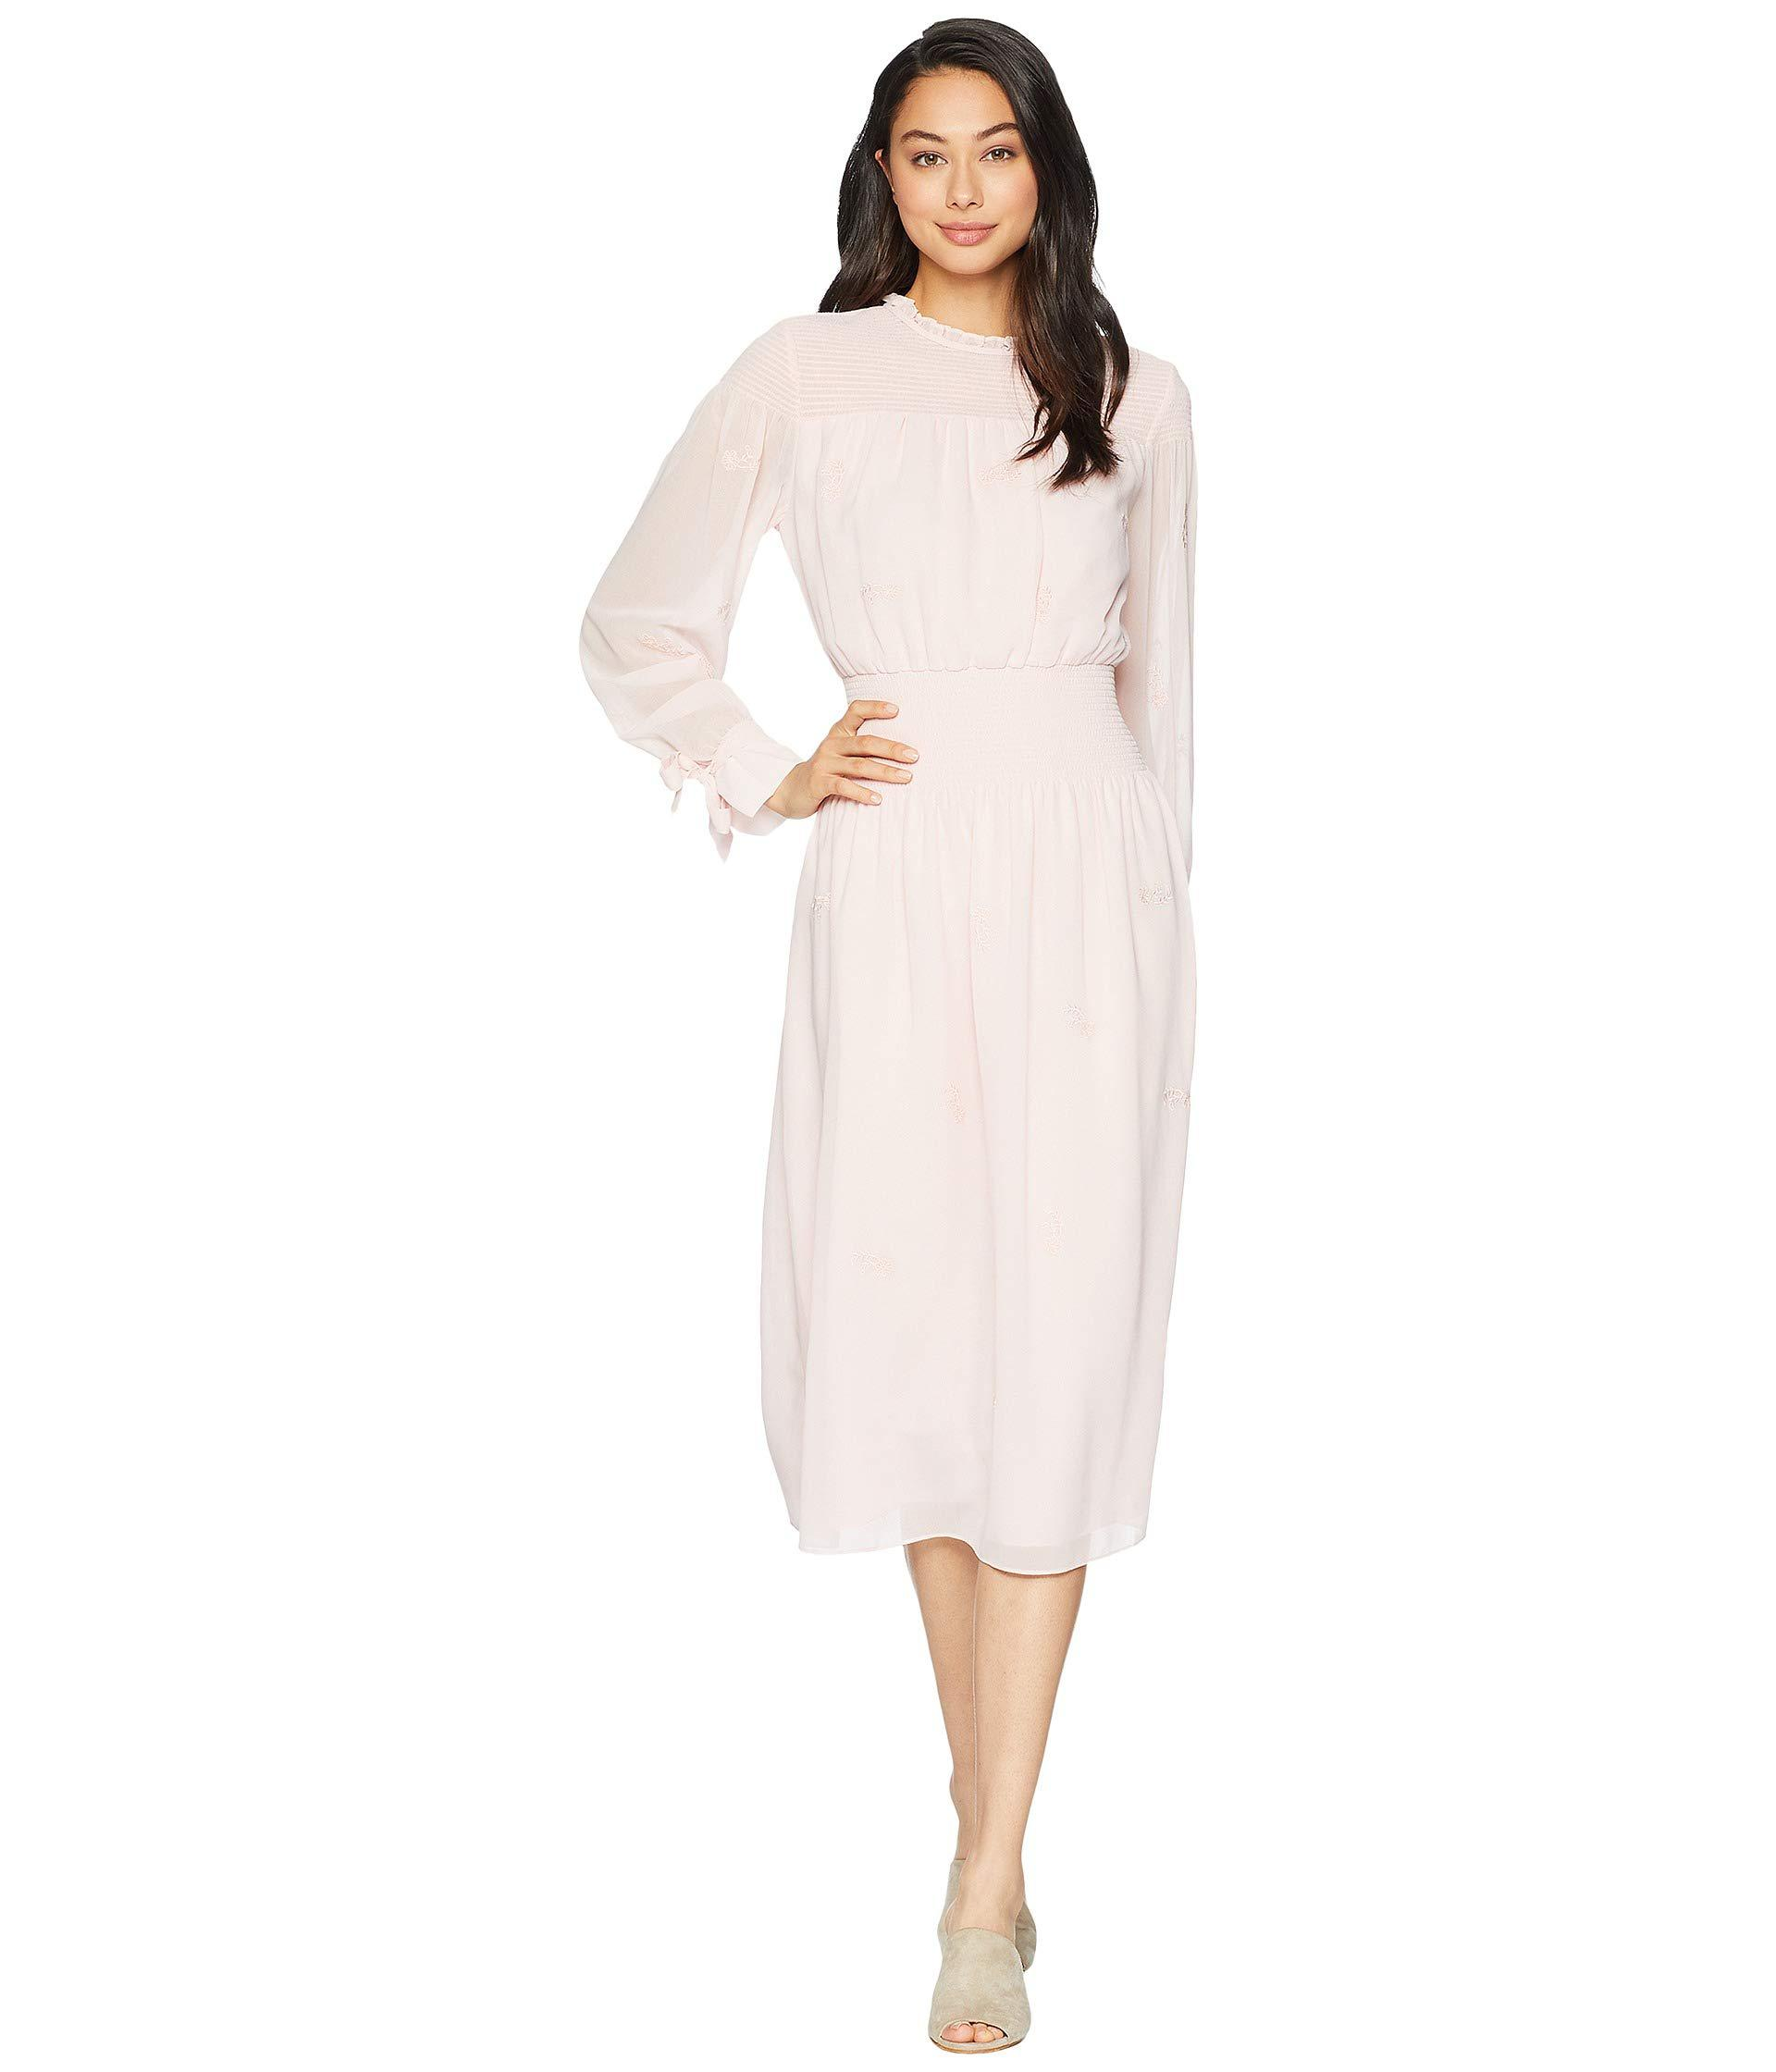 1d5628a4bdc8 Lyst - Juicy Couture Smocked Embroidered Georgette Midi Dress in Pink